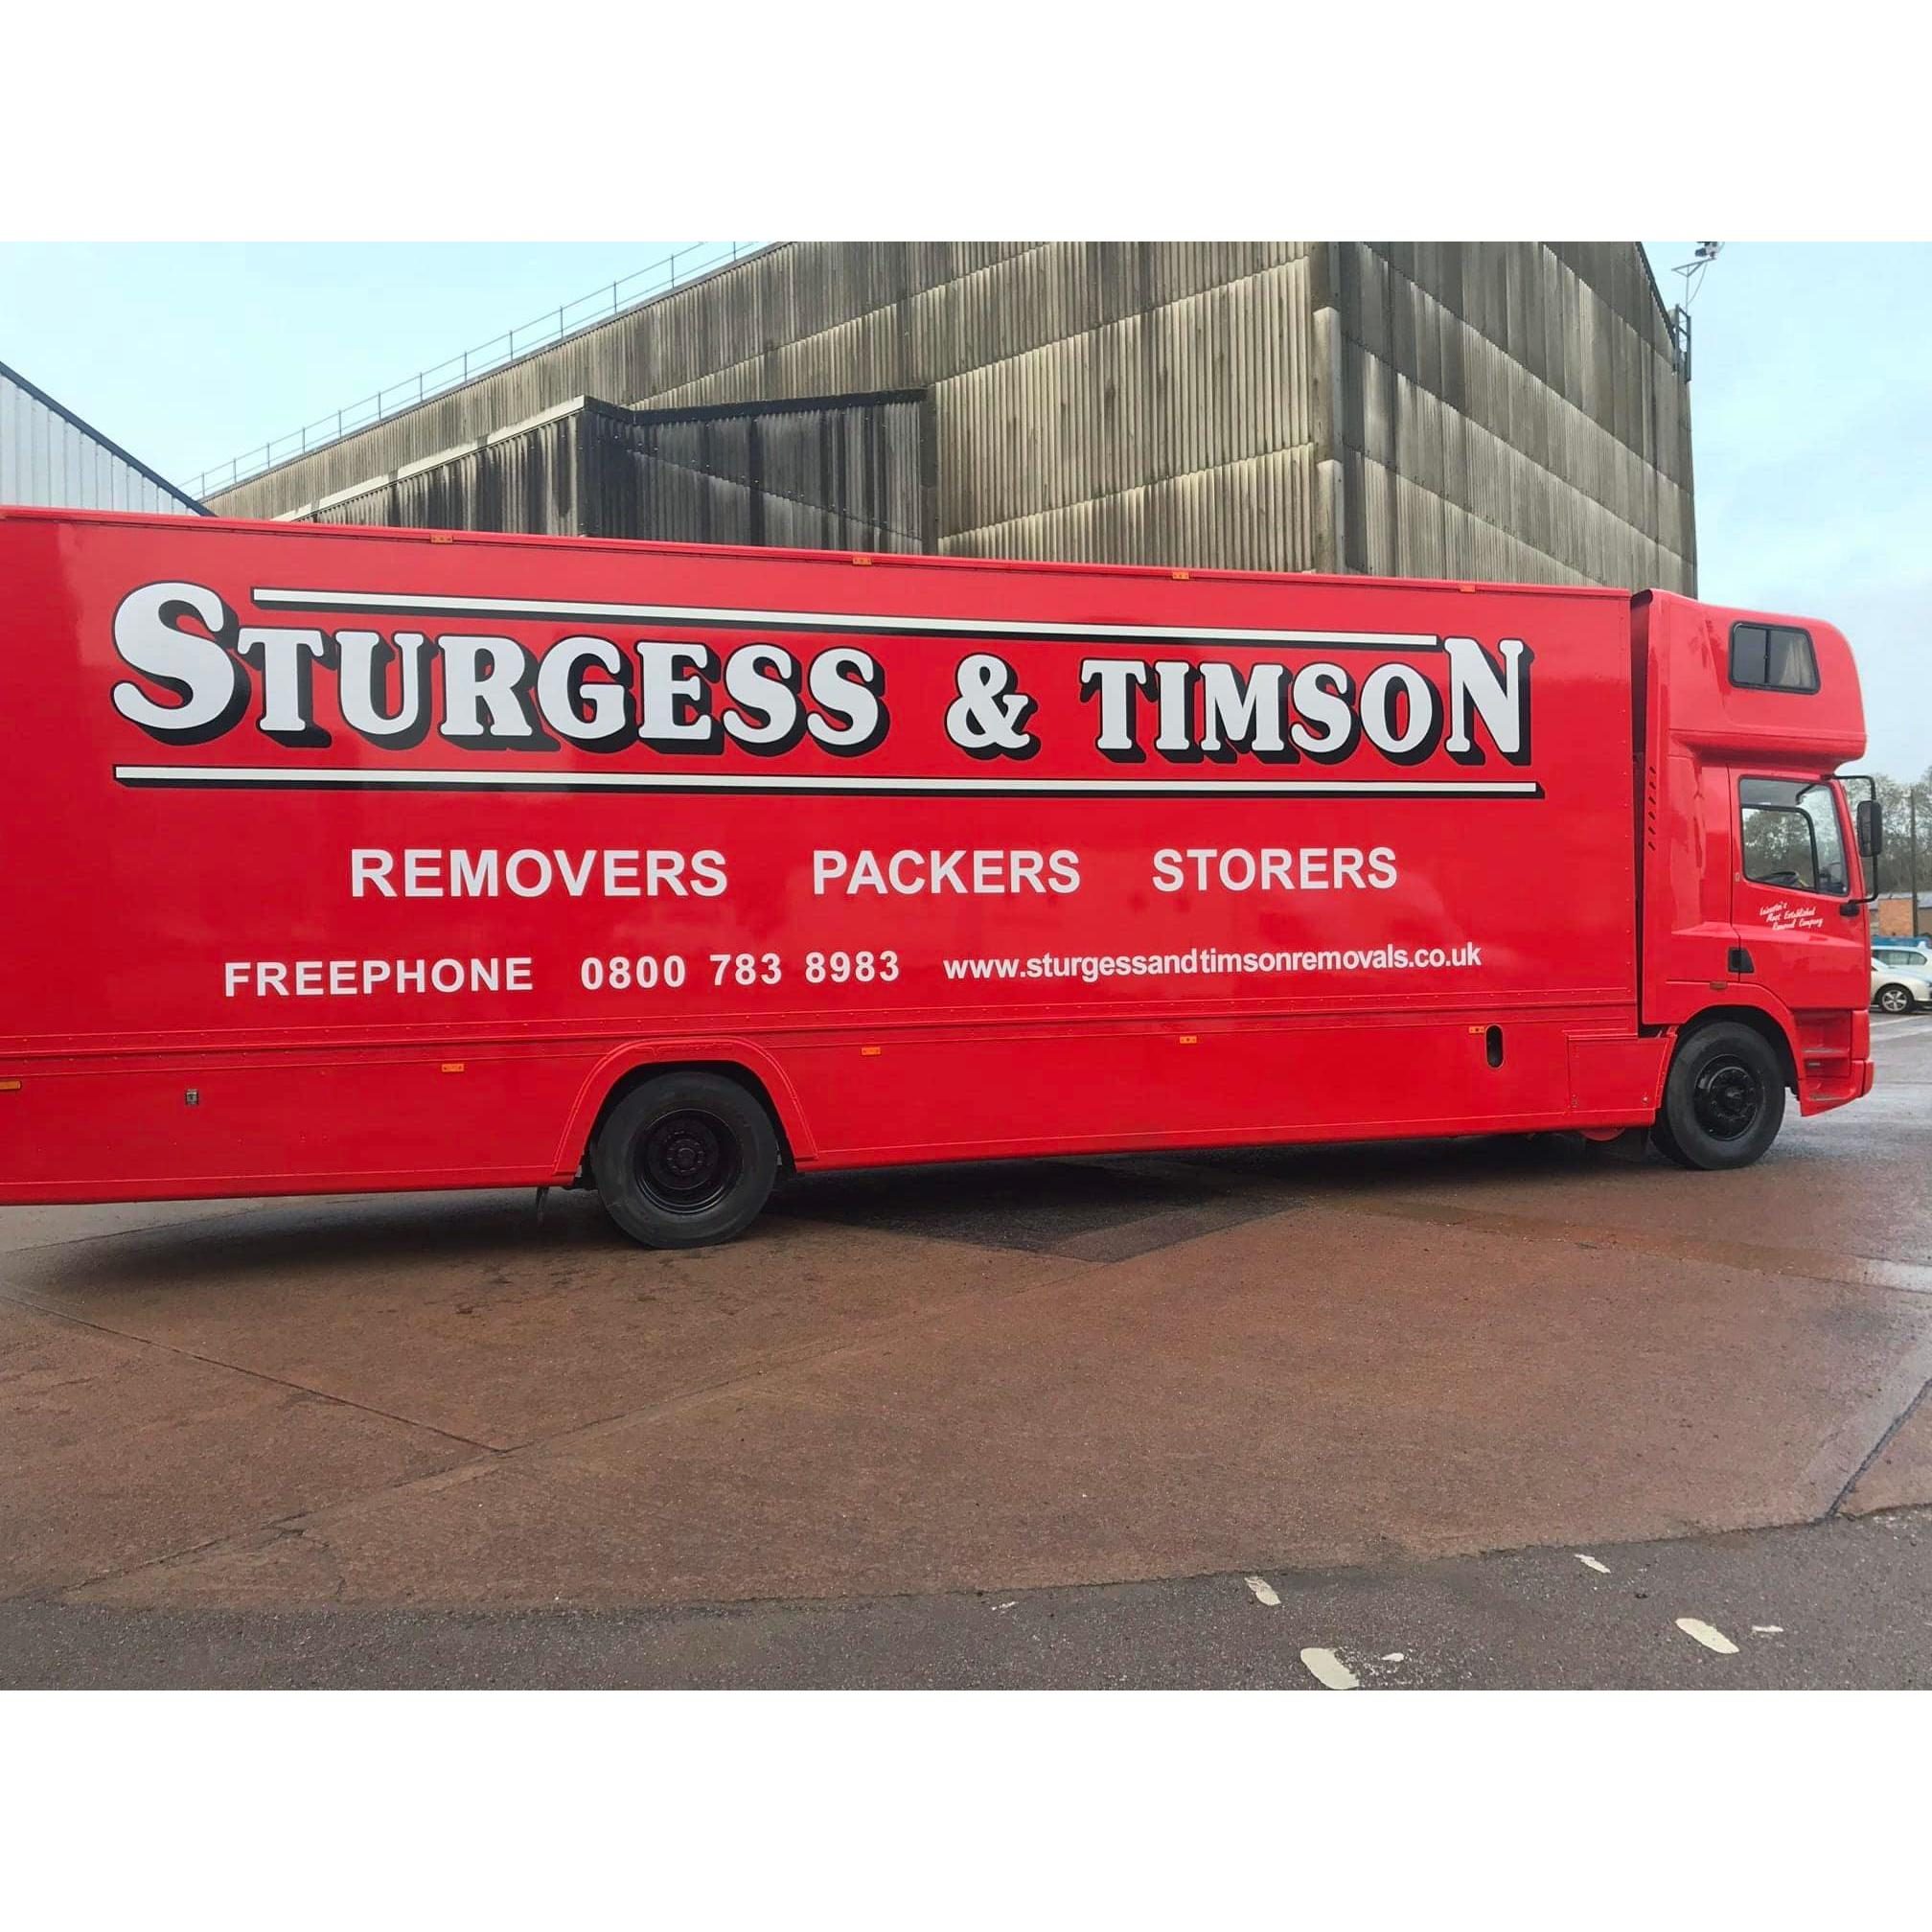 Sturgess & Timson Removals - Leicester, Leicestershire LE8 4HS - 08007 838983 | ShowMeLocal.com